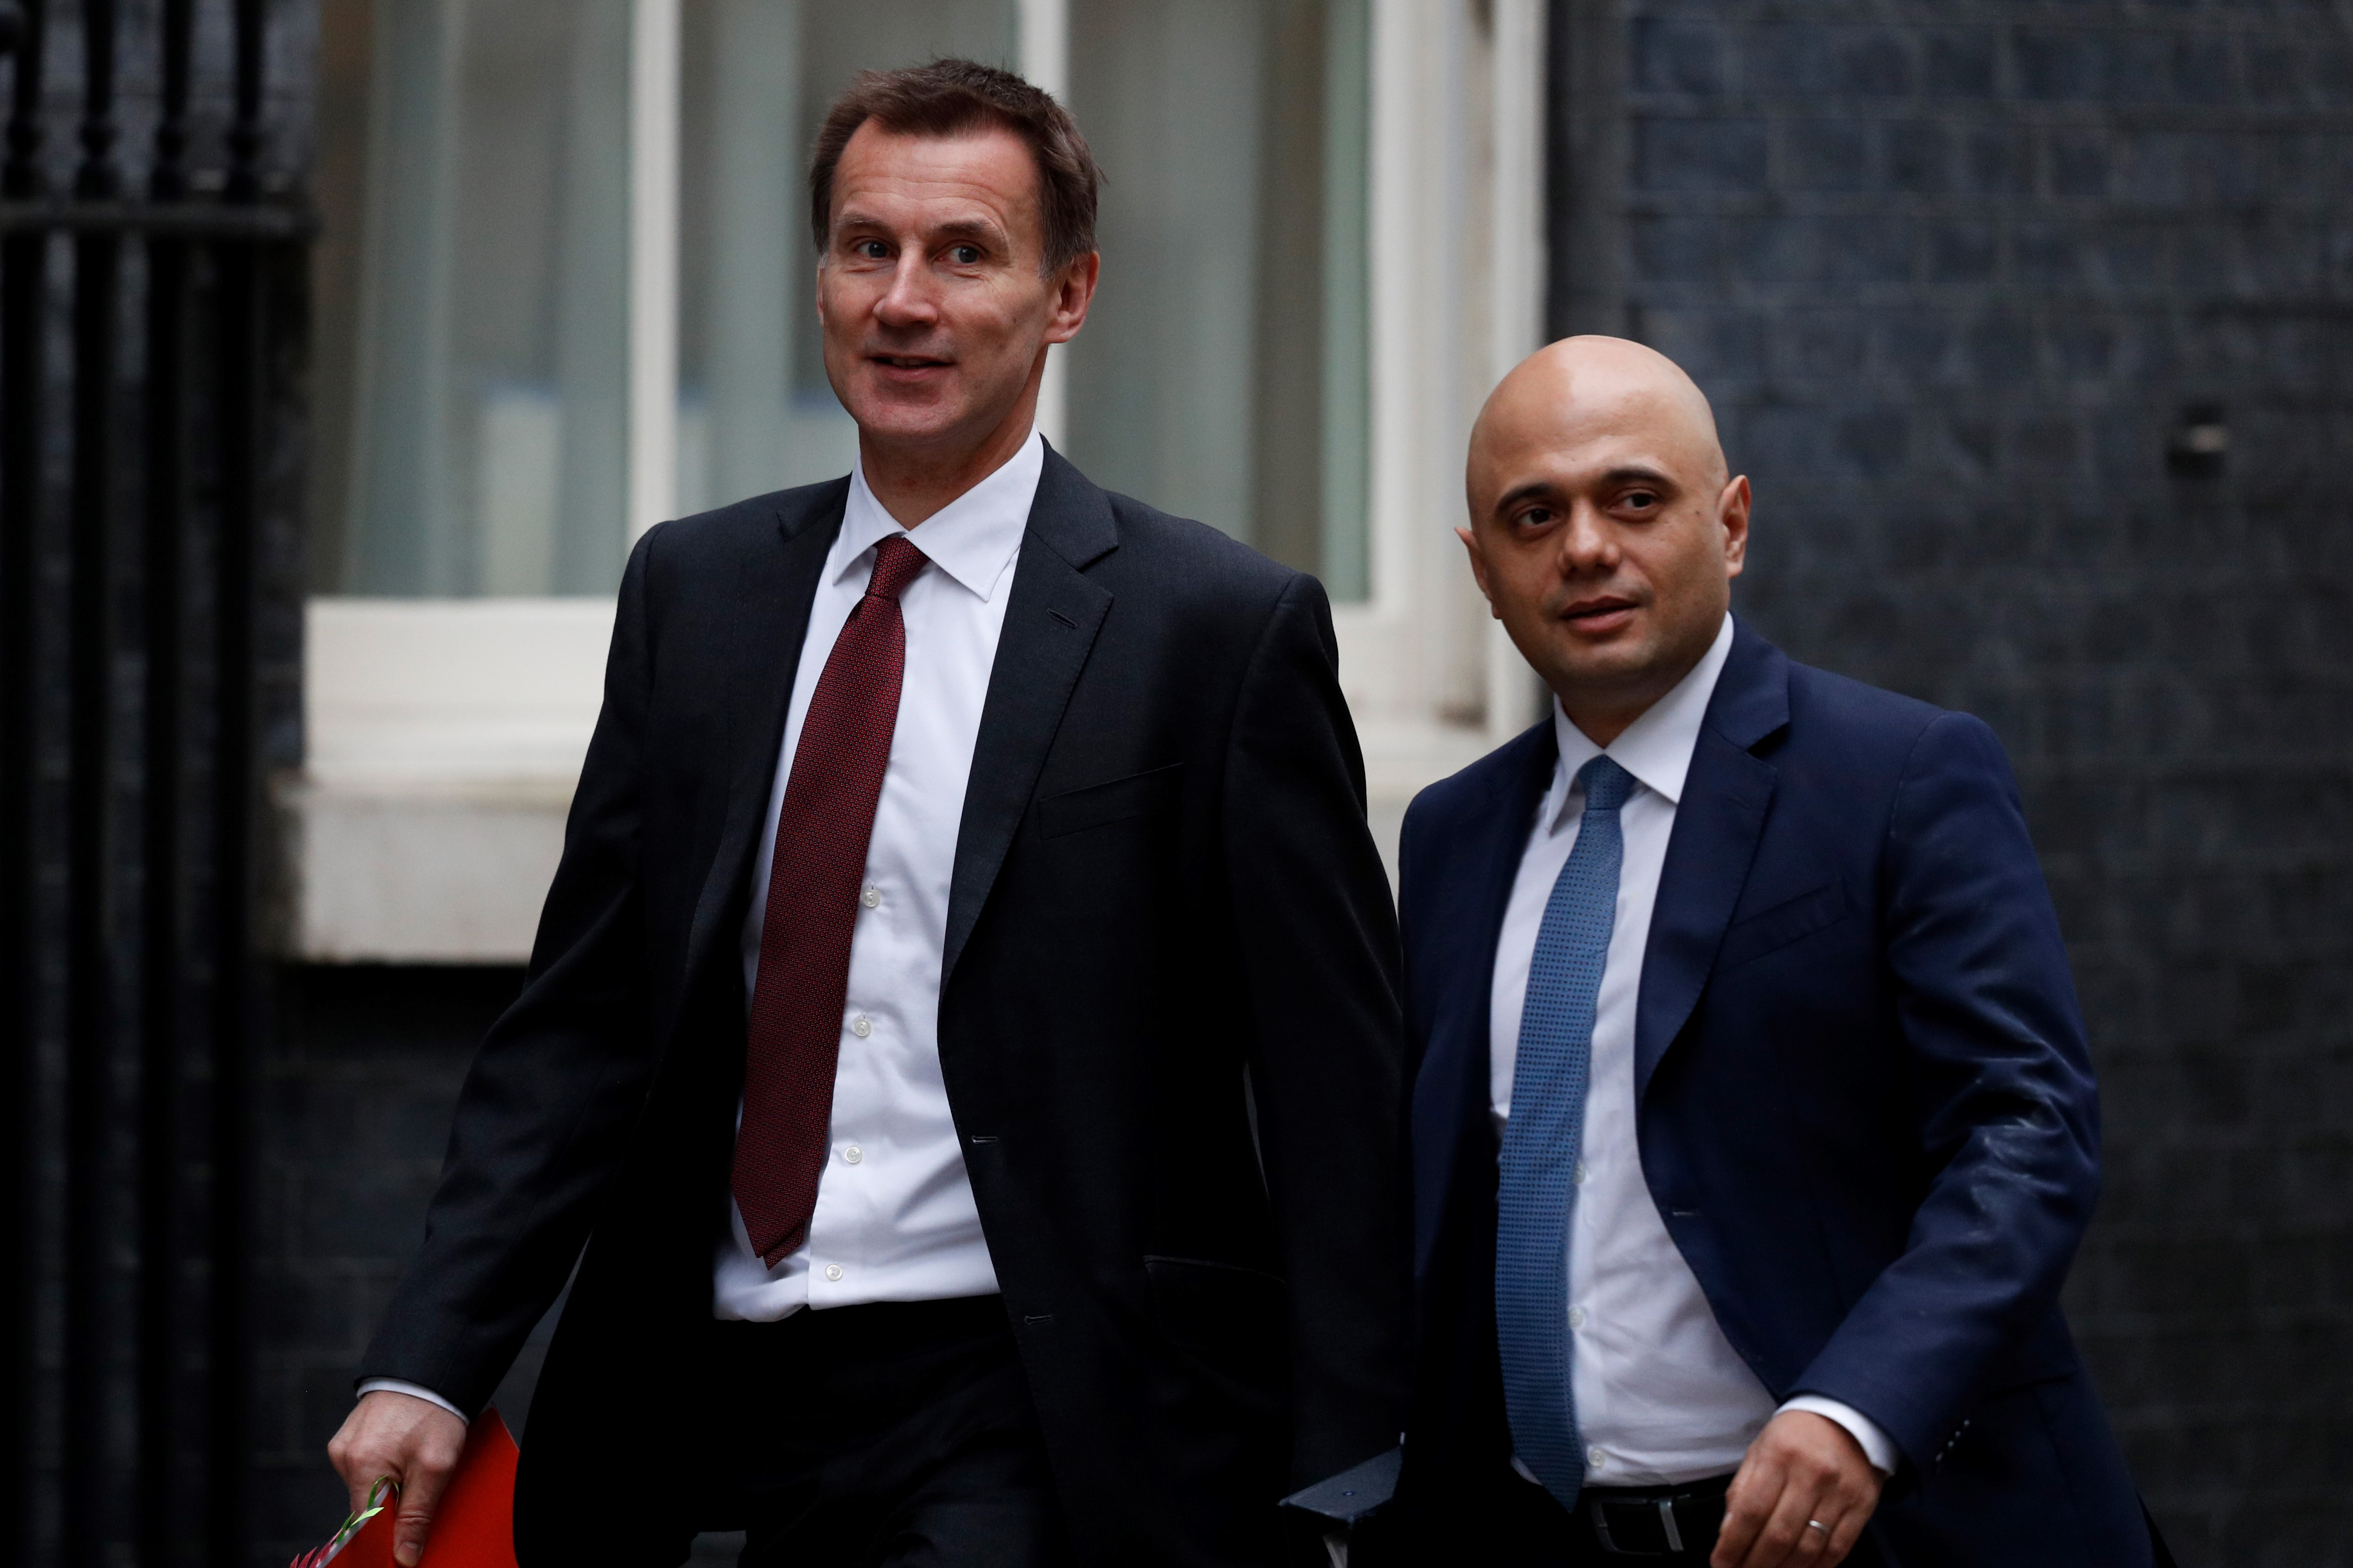 Britain's Foreign Secretary Jeremy Hunt (L) and Britain's Home Secretary Sajid Javid arrive for the weekly cabinet meeting at 10 Downing street in London on 15 January, 2019 (AFP)